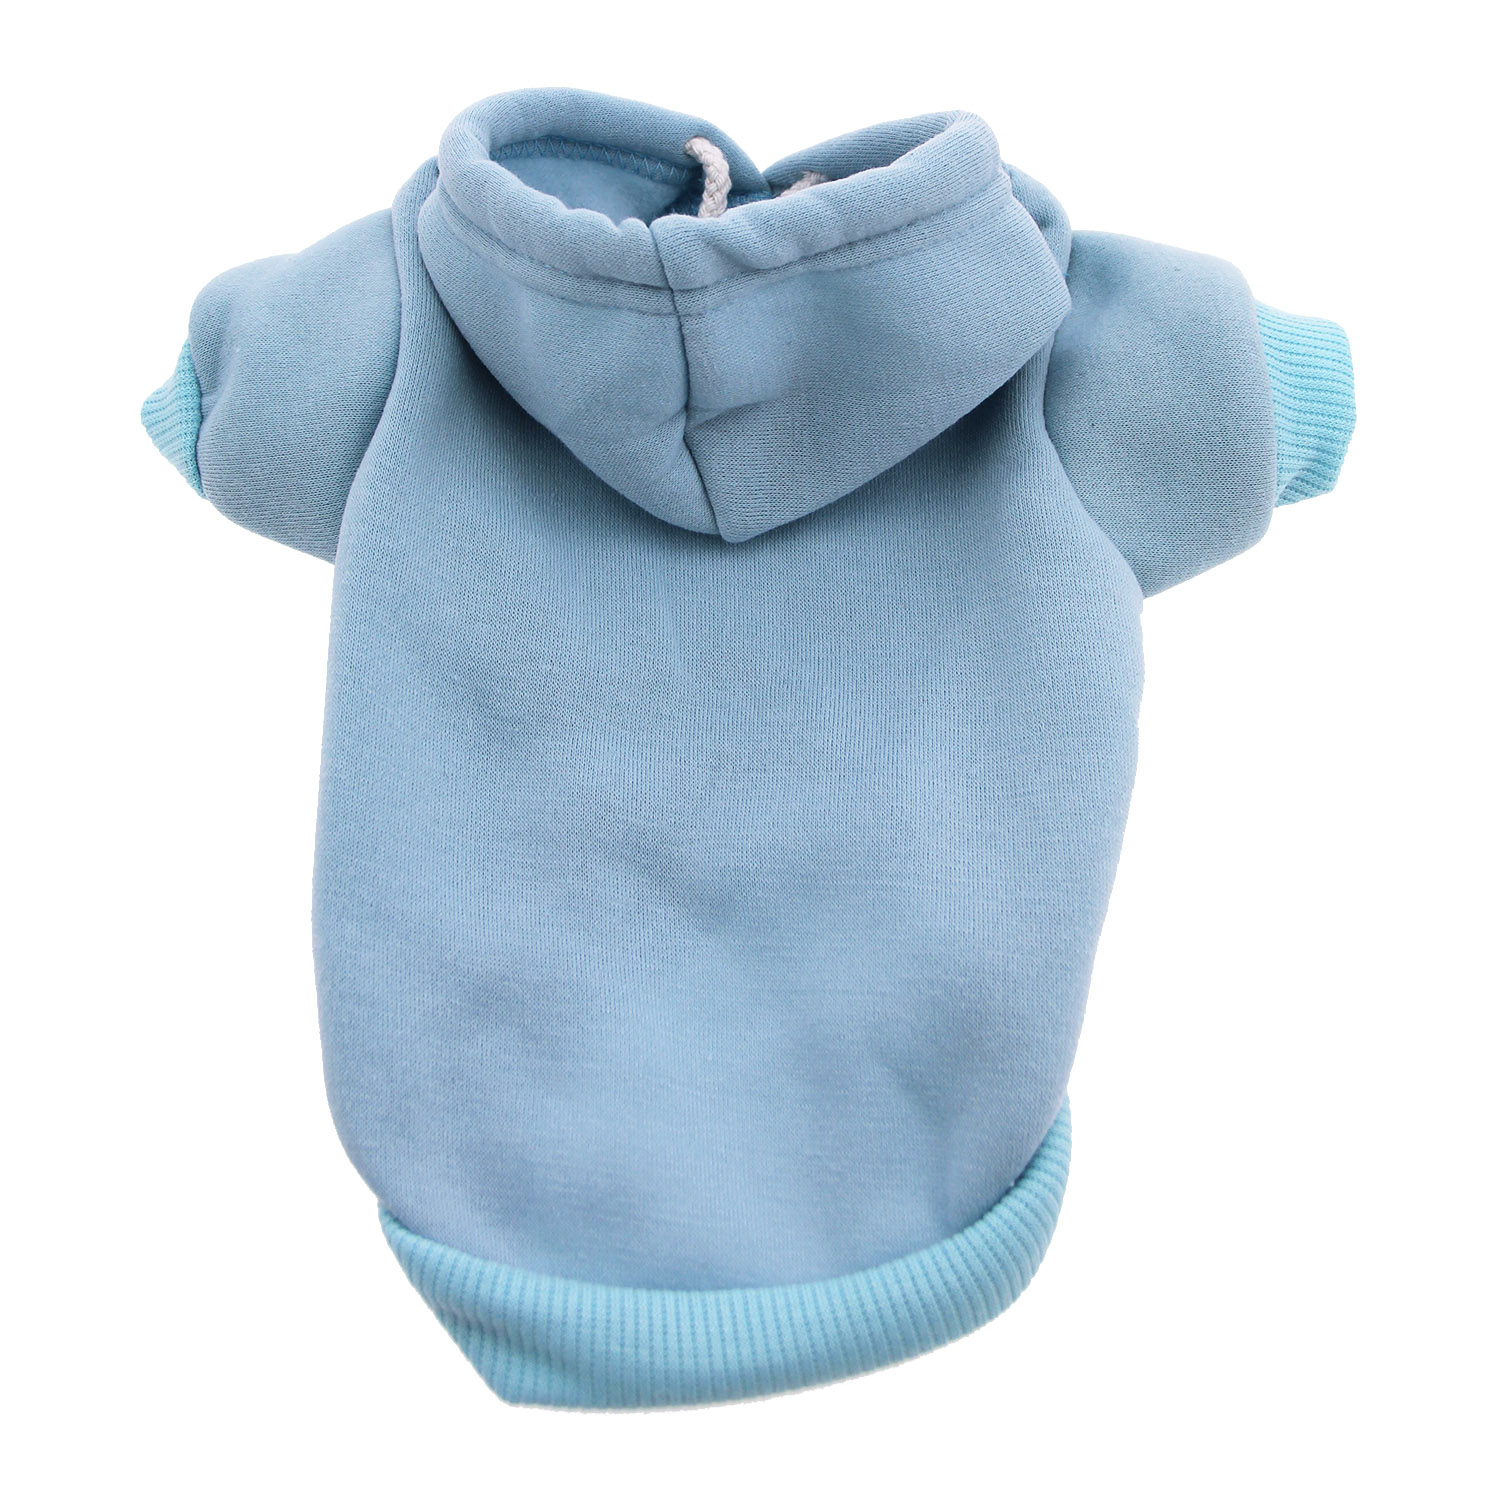 Baby blue hoodies